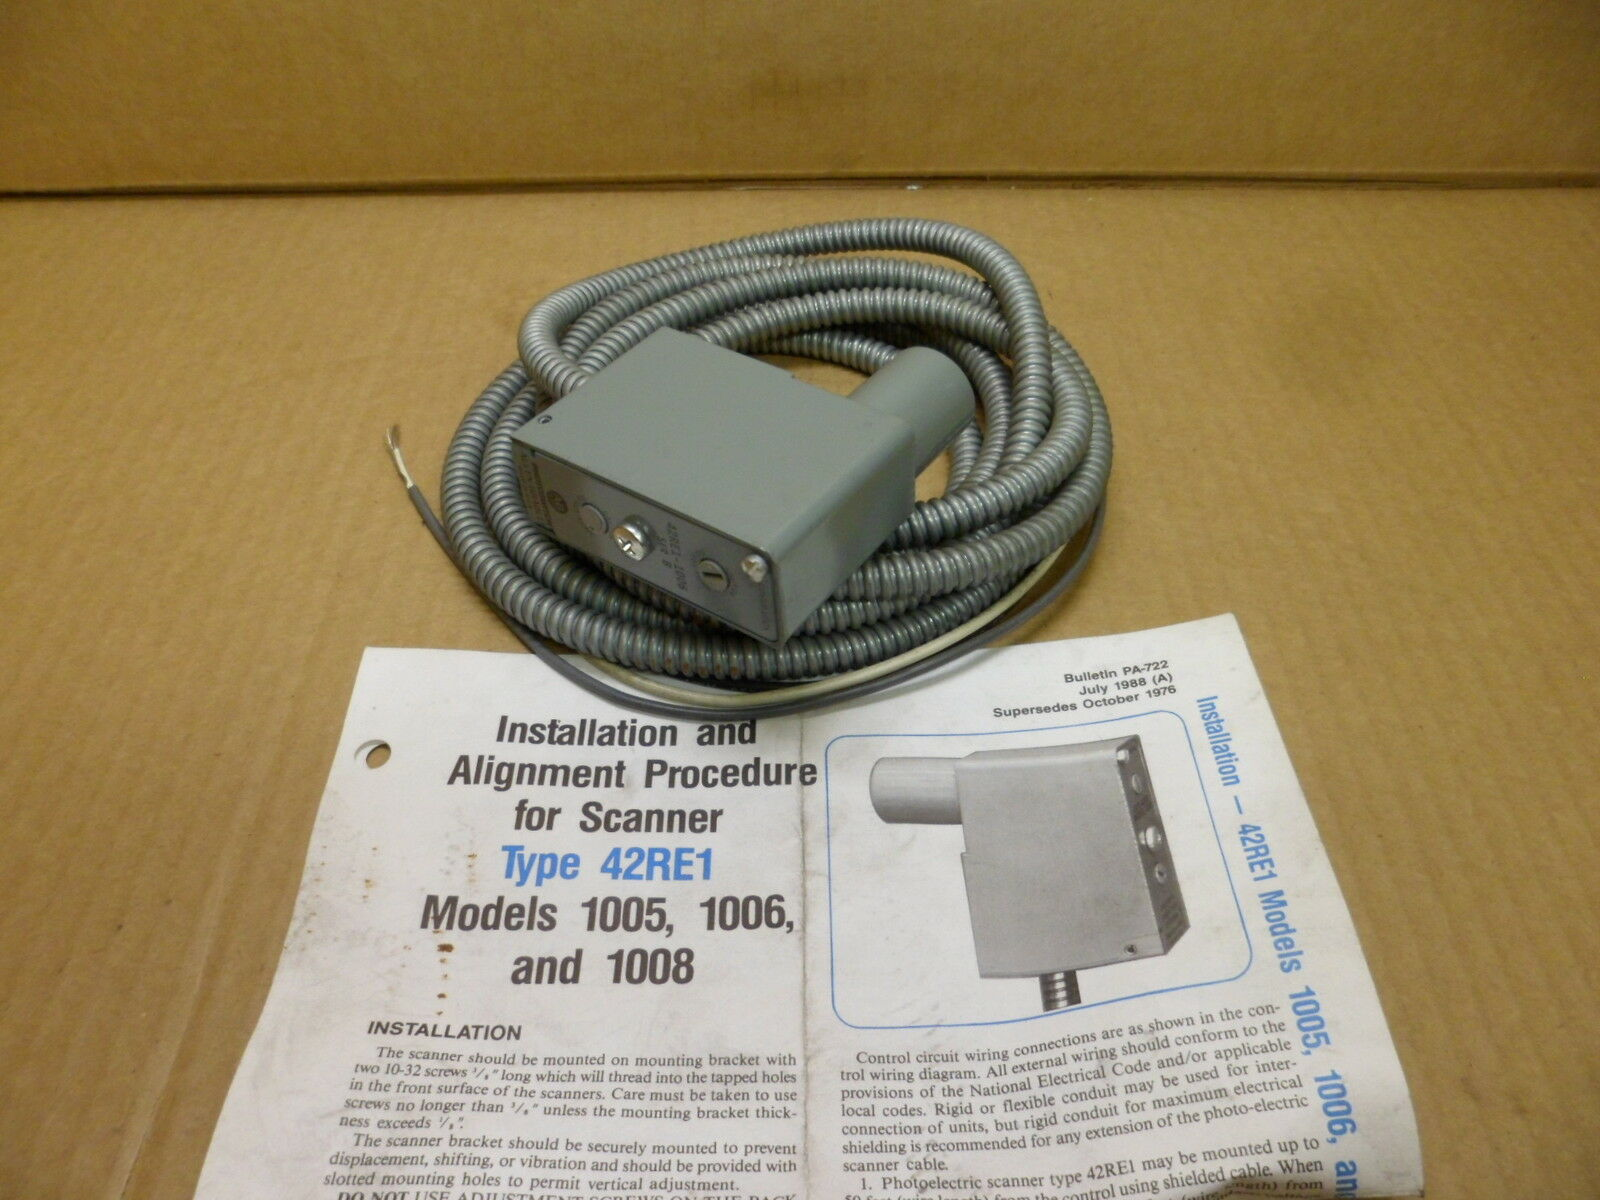 Allen Bradley 42re1 1006 Ser B Photoswitch Retroreflective Scanner The Photocell See Diagram For How To Wire This Unit Norton Secured Powered By Verisign